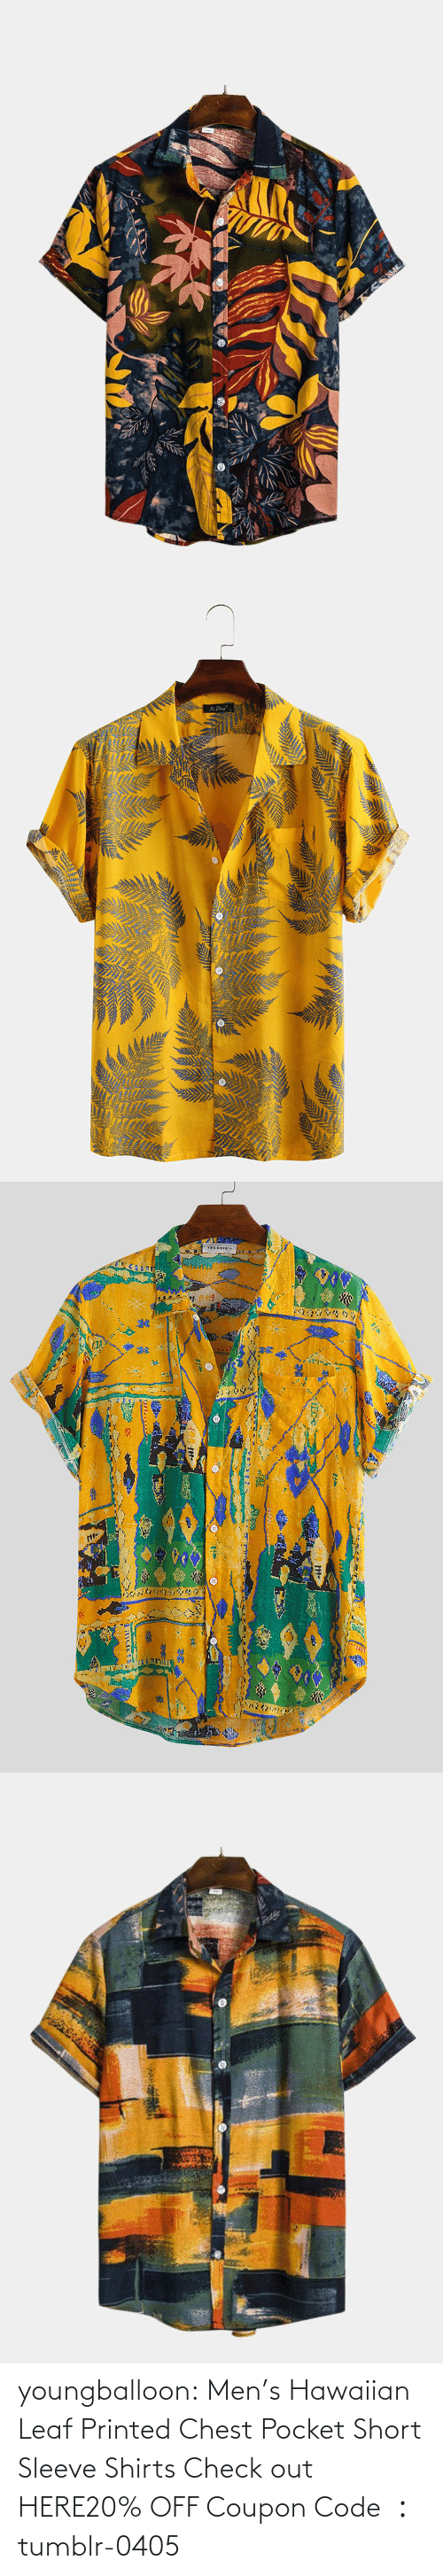 Shirts: youngballoon:  Men's Hawaiian Leaf Printed Chest Pocket Short Sleeve Shirts Check out HERE20% OFF Coupon Code : tumblr-0405